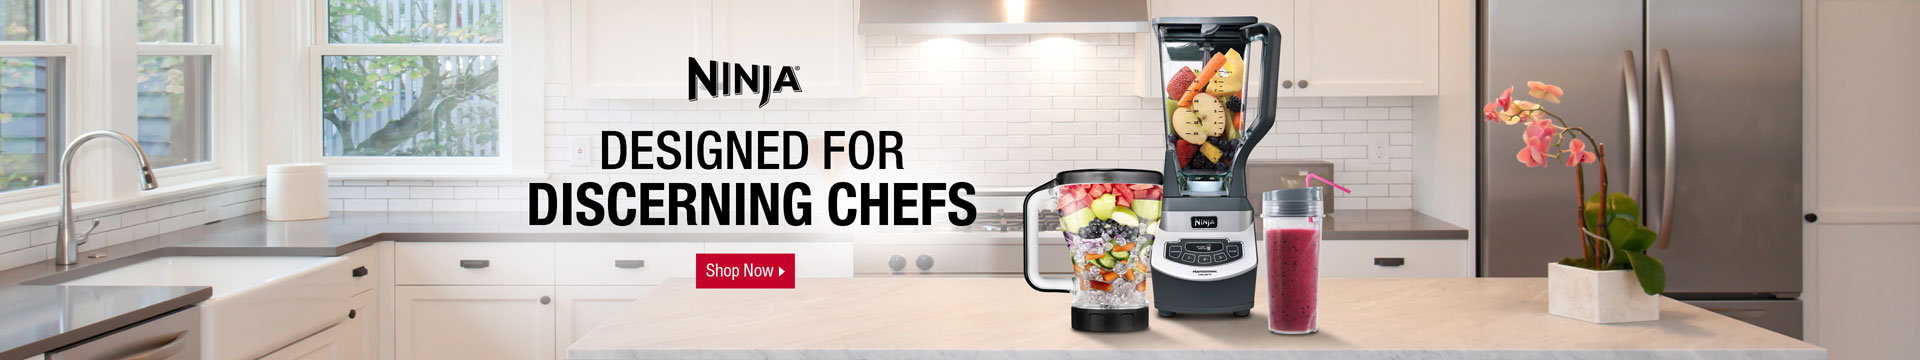 Home and Kitchen Appliances - Newegg.com